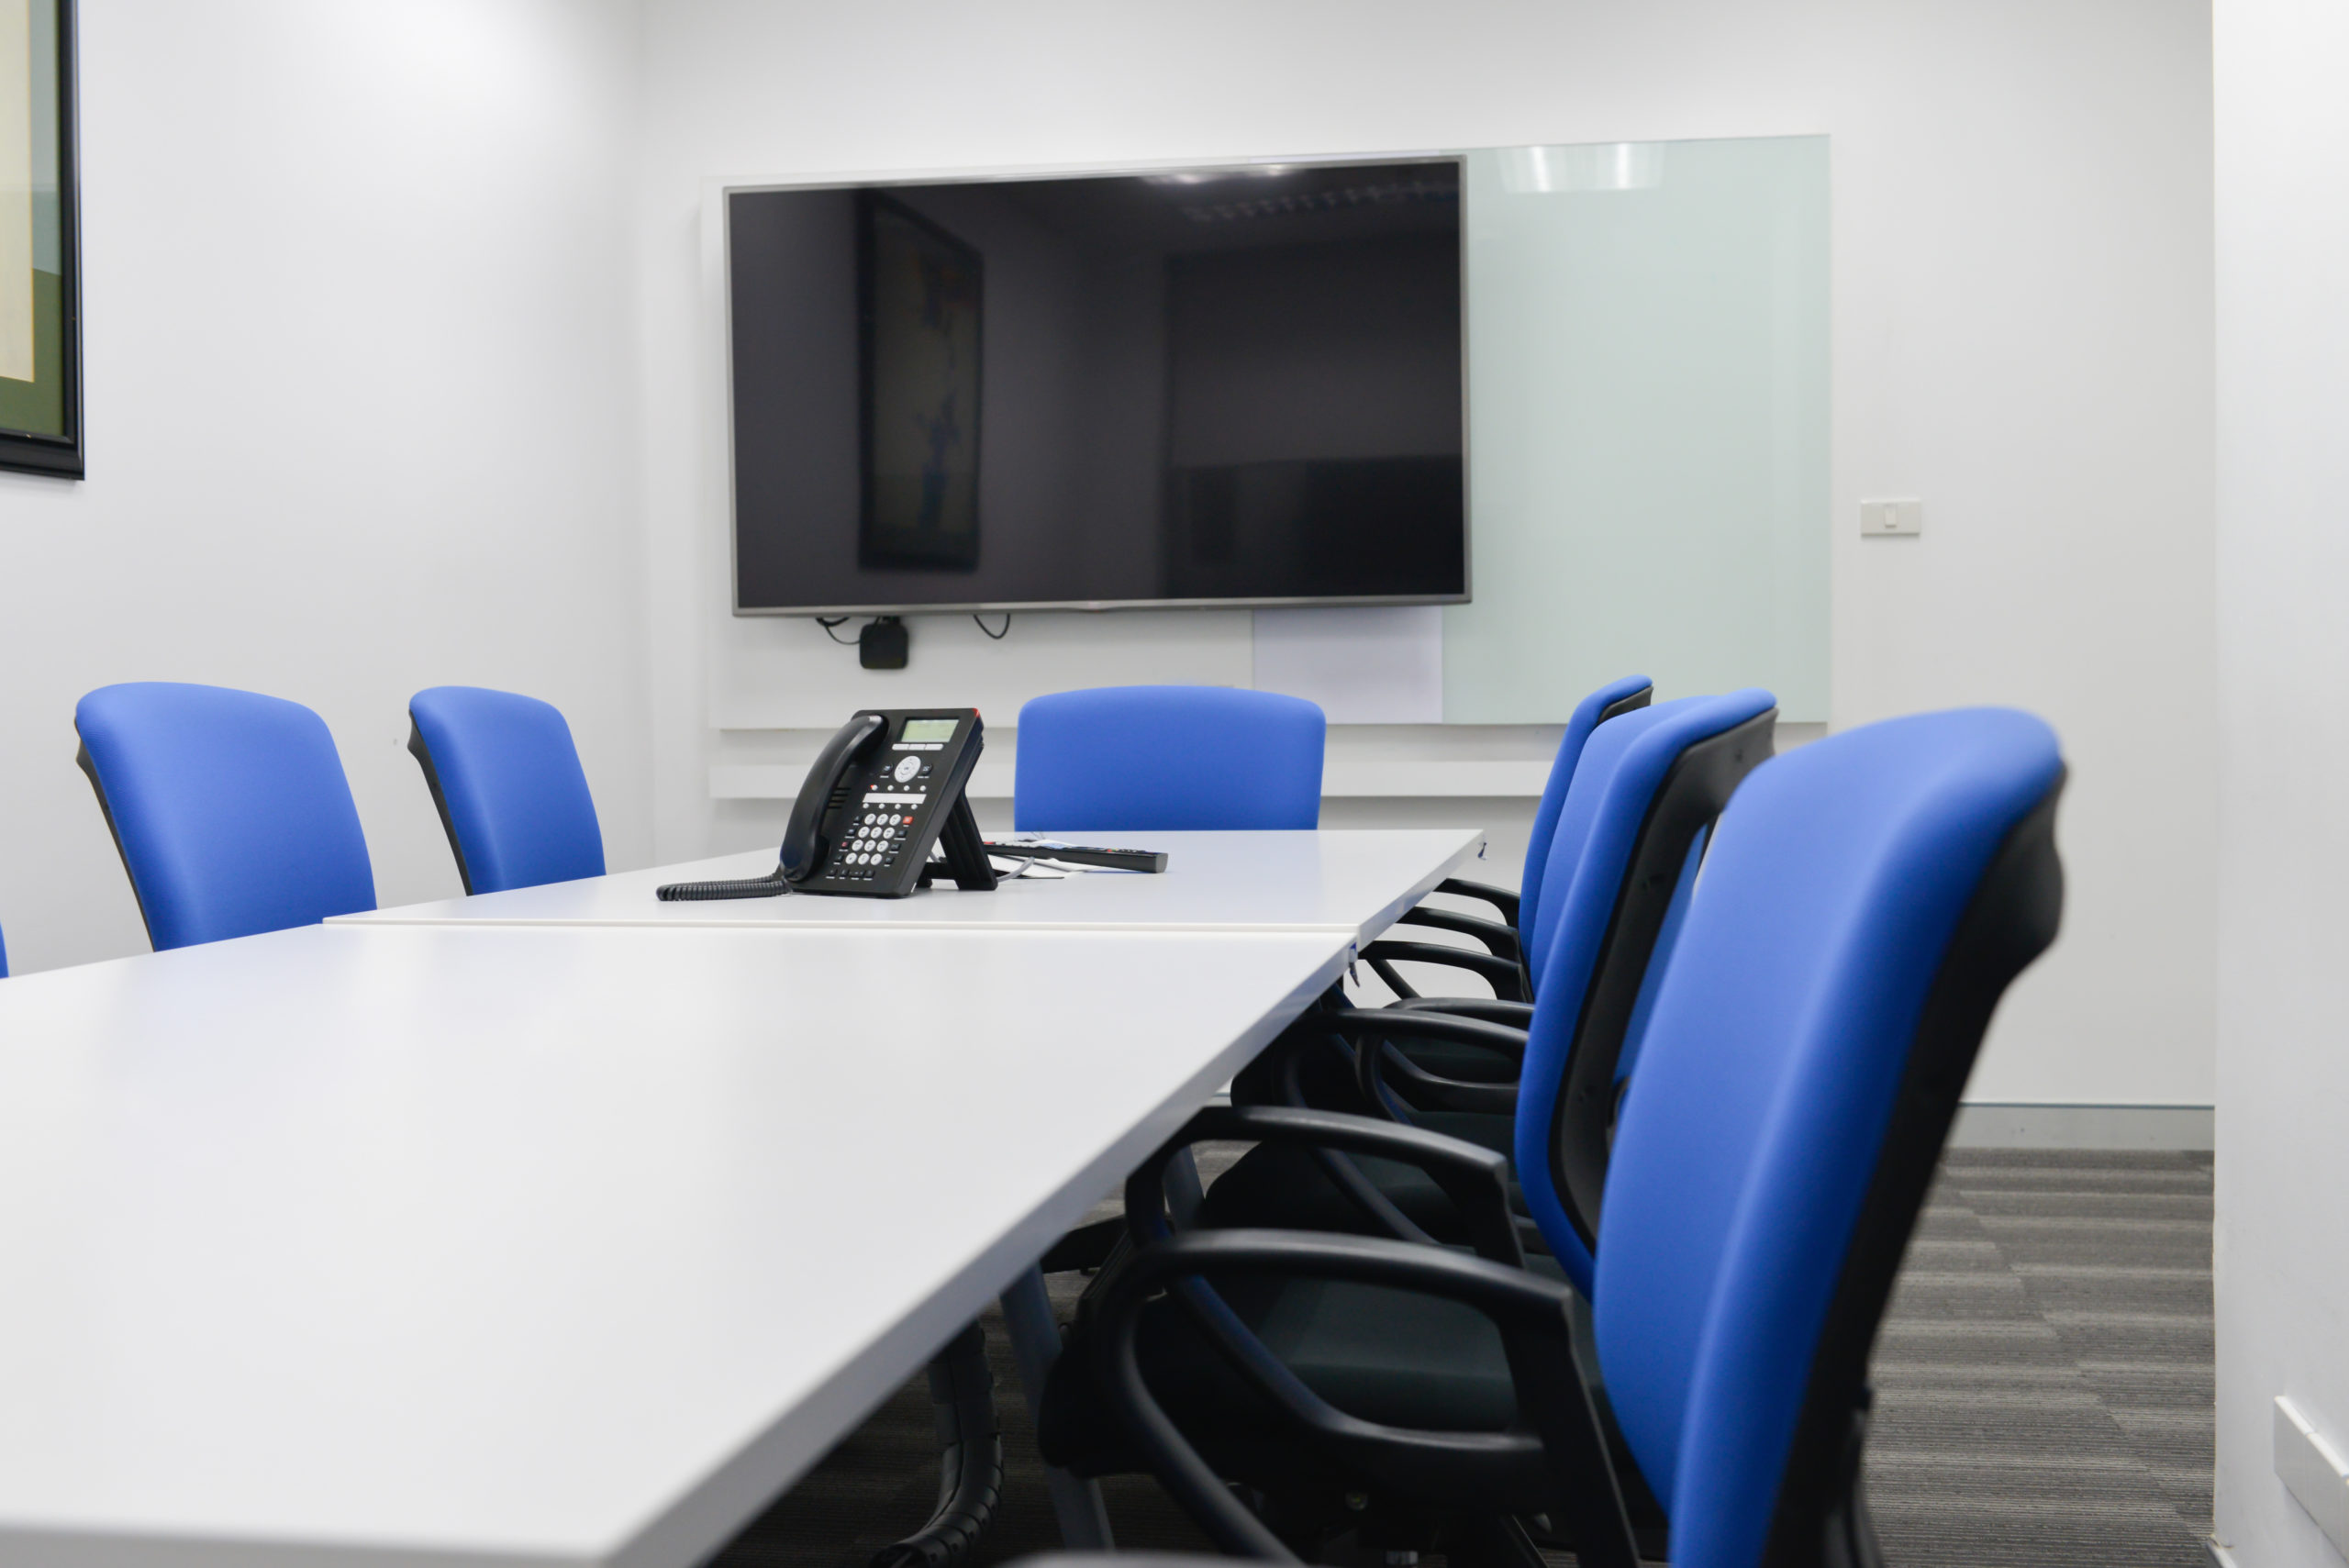 White Conference Room Desk with Blue Chairs, VoIP Phone on Desk and Screen in Background